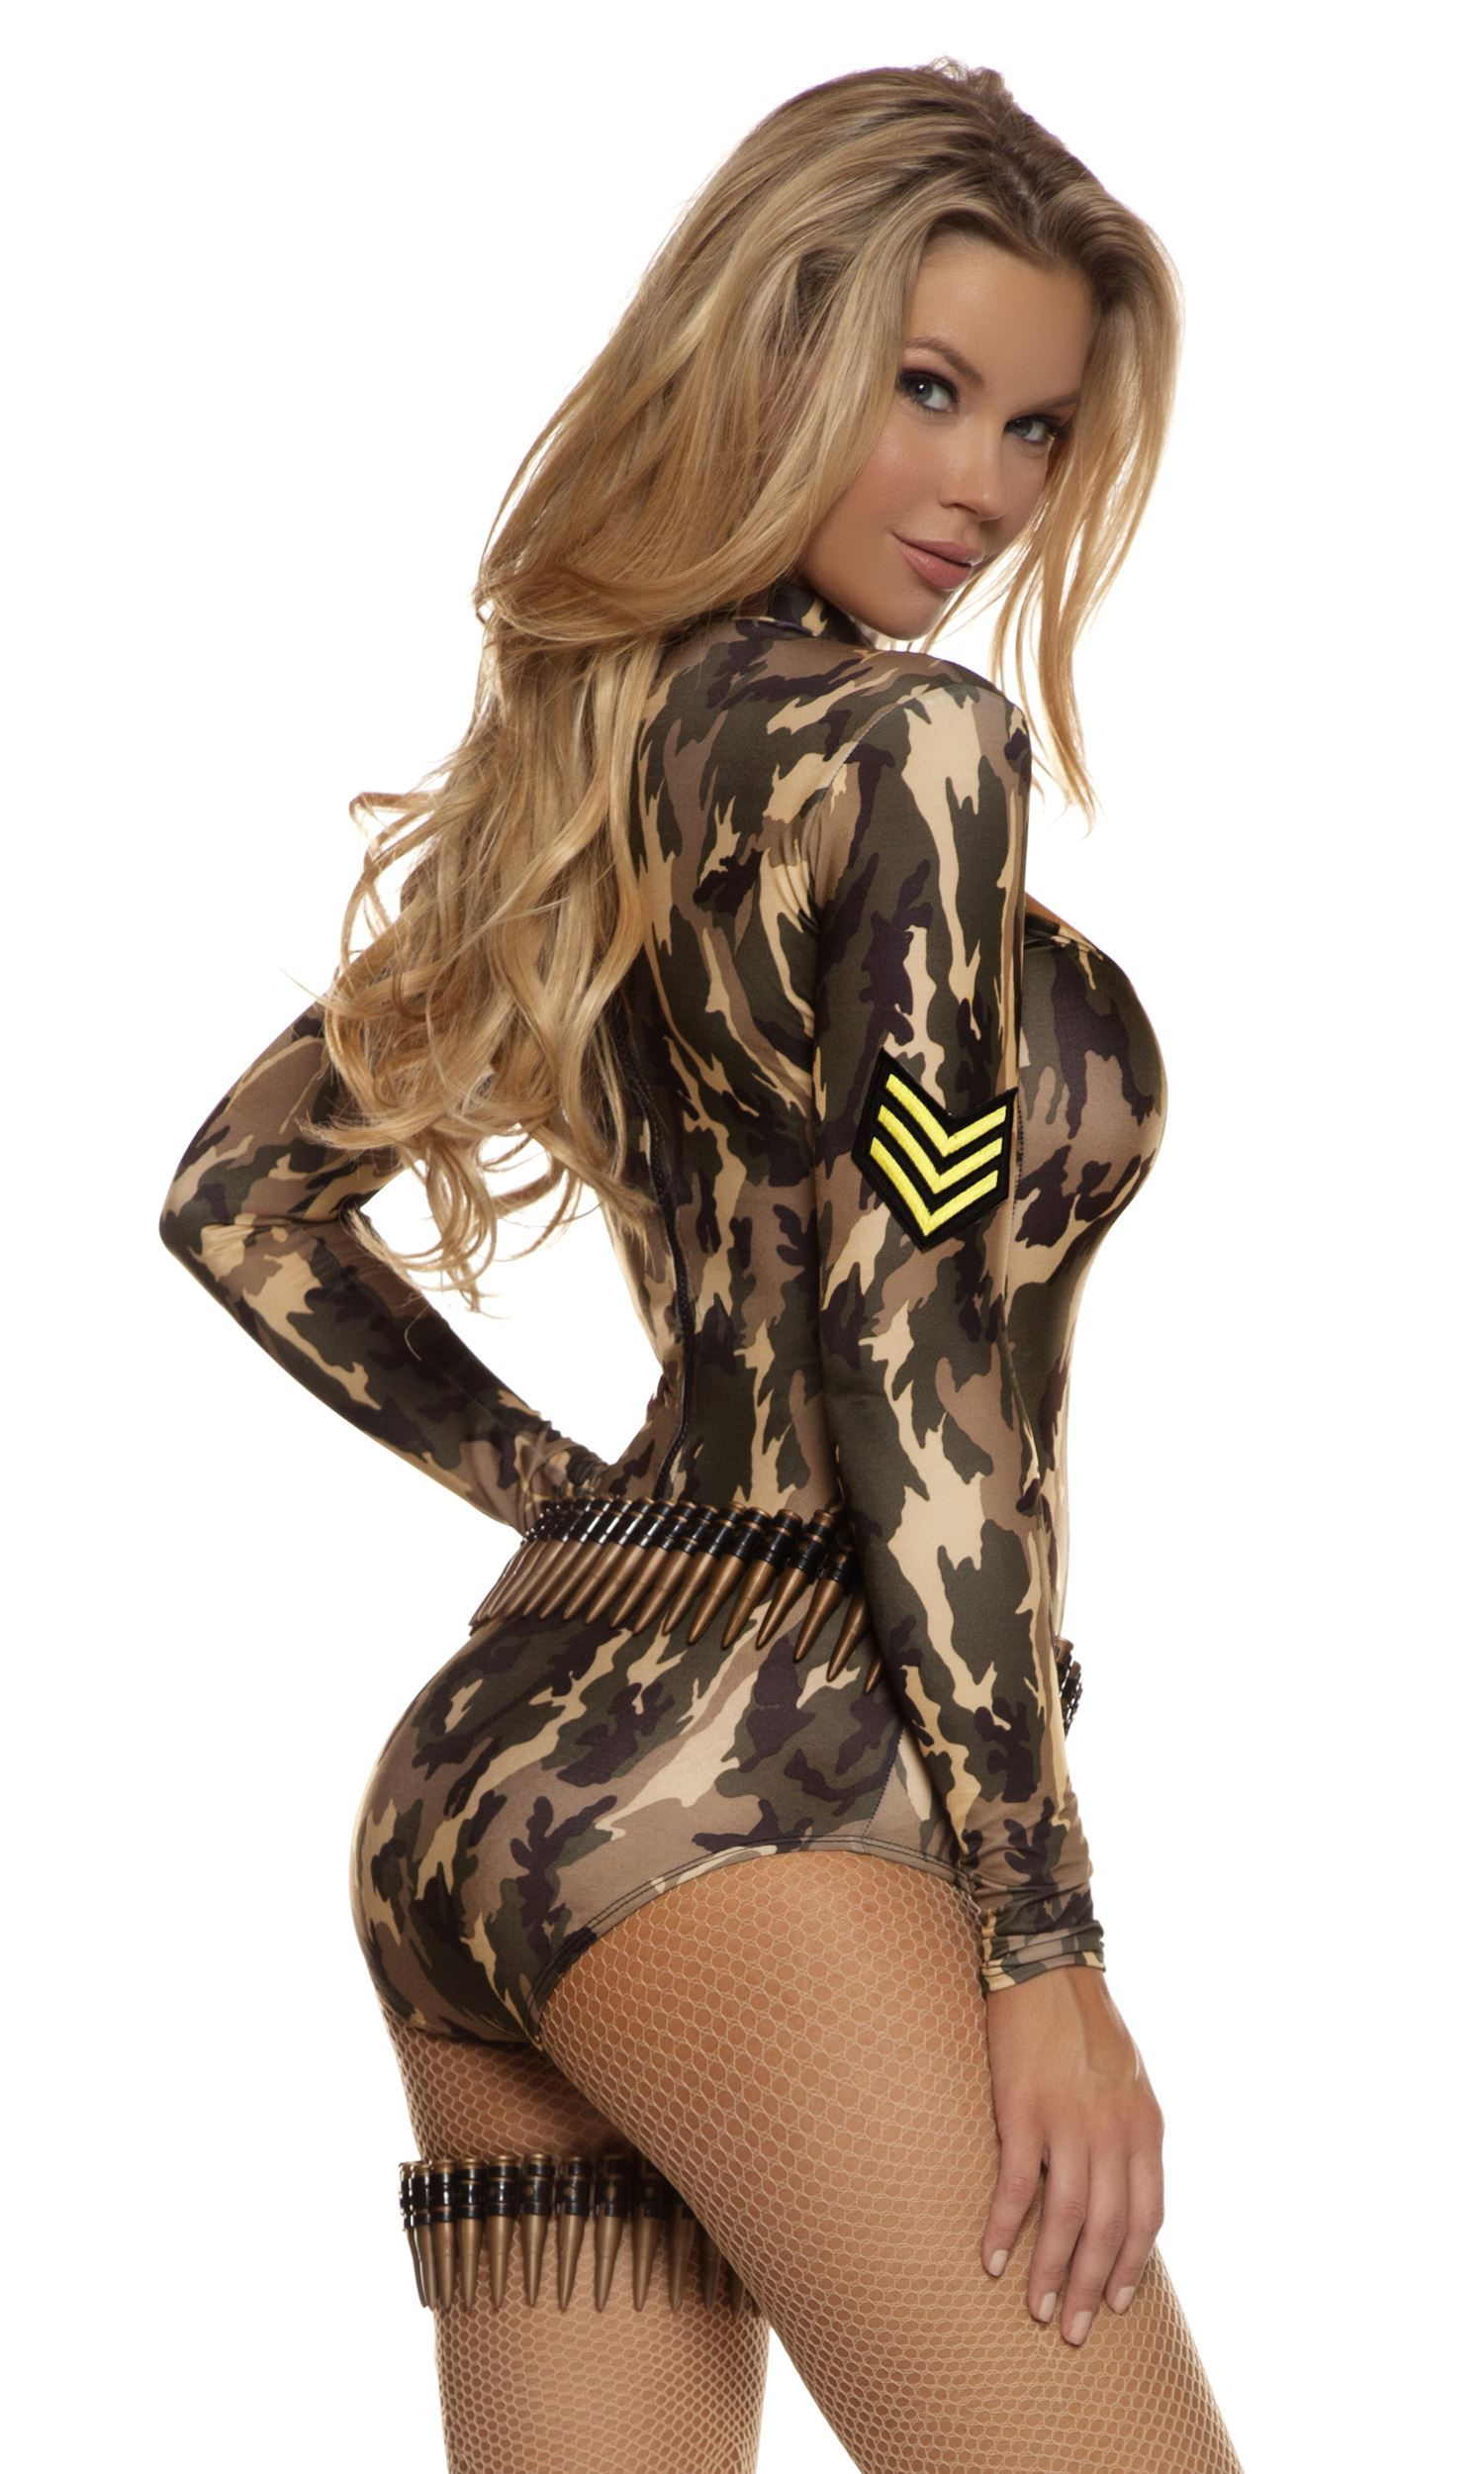 Find great deals on eBay for girls camouflage clothes. Shop with confidence.